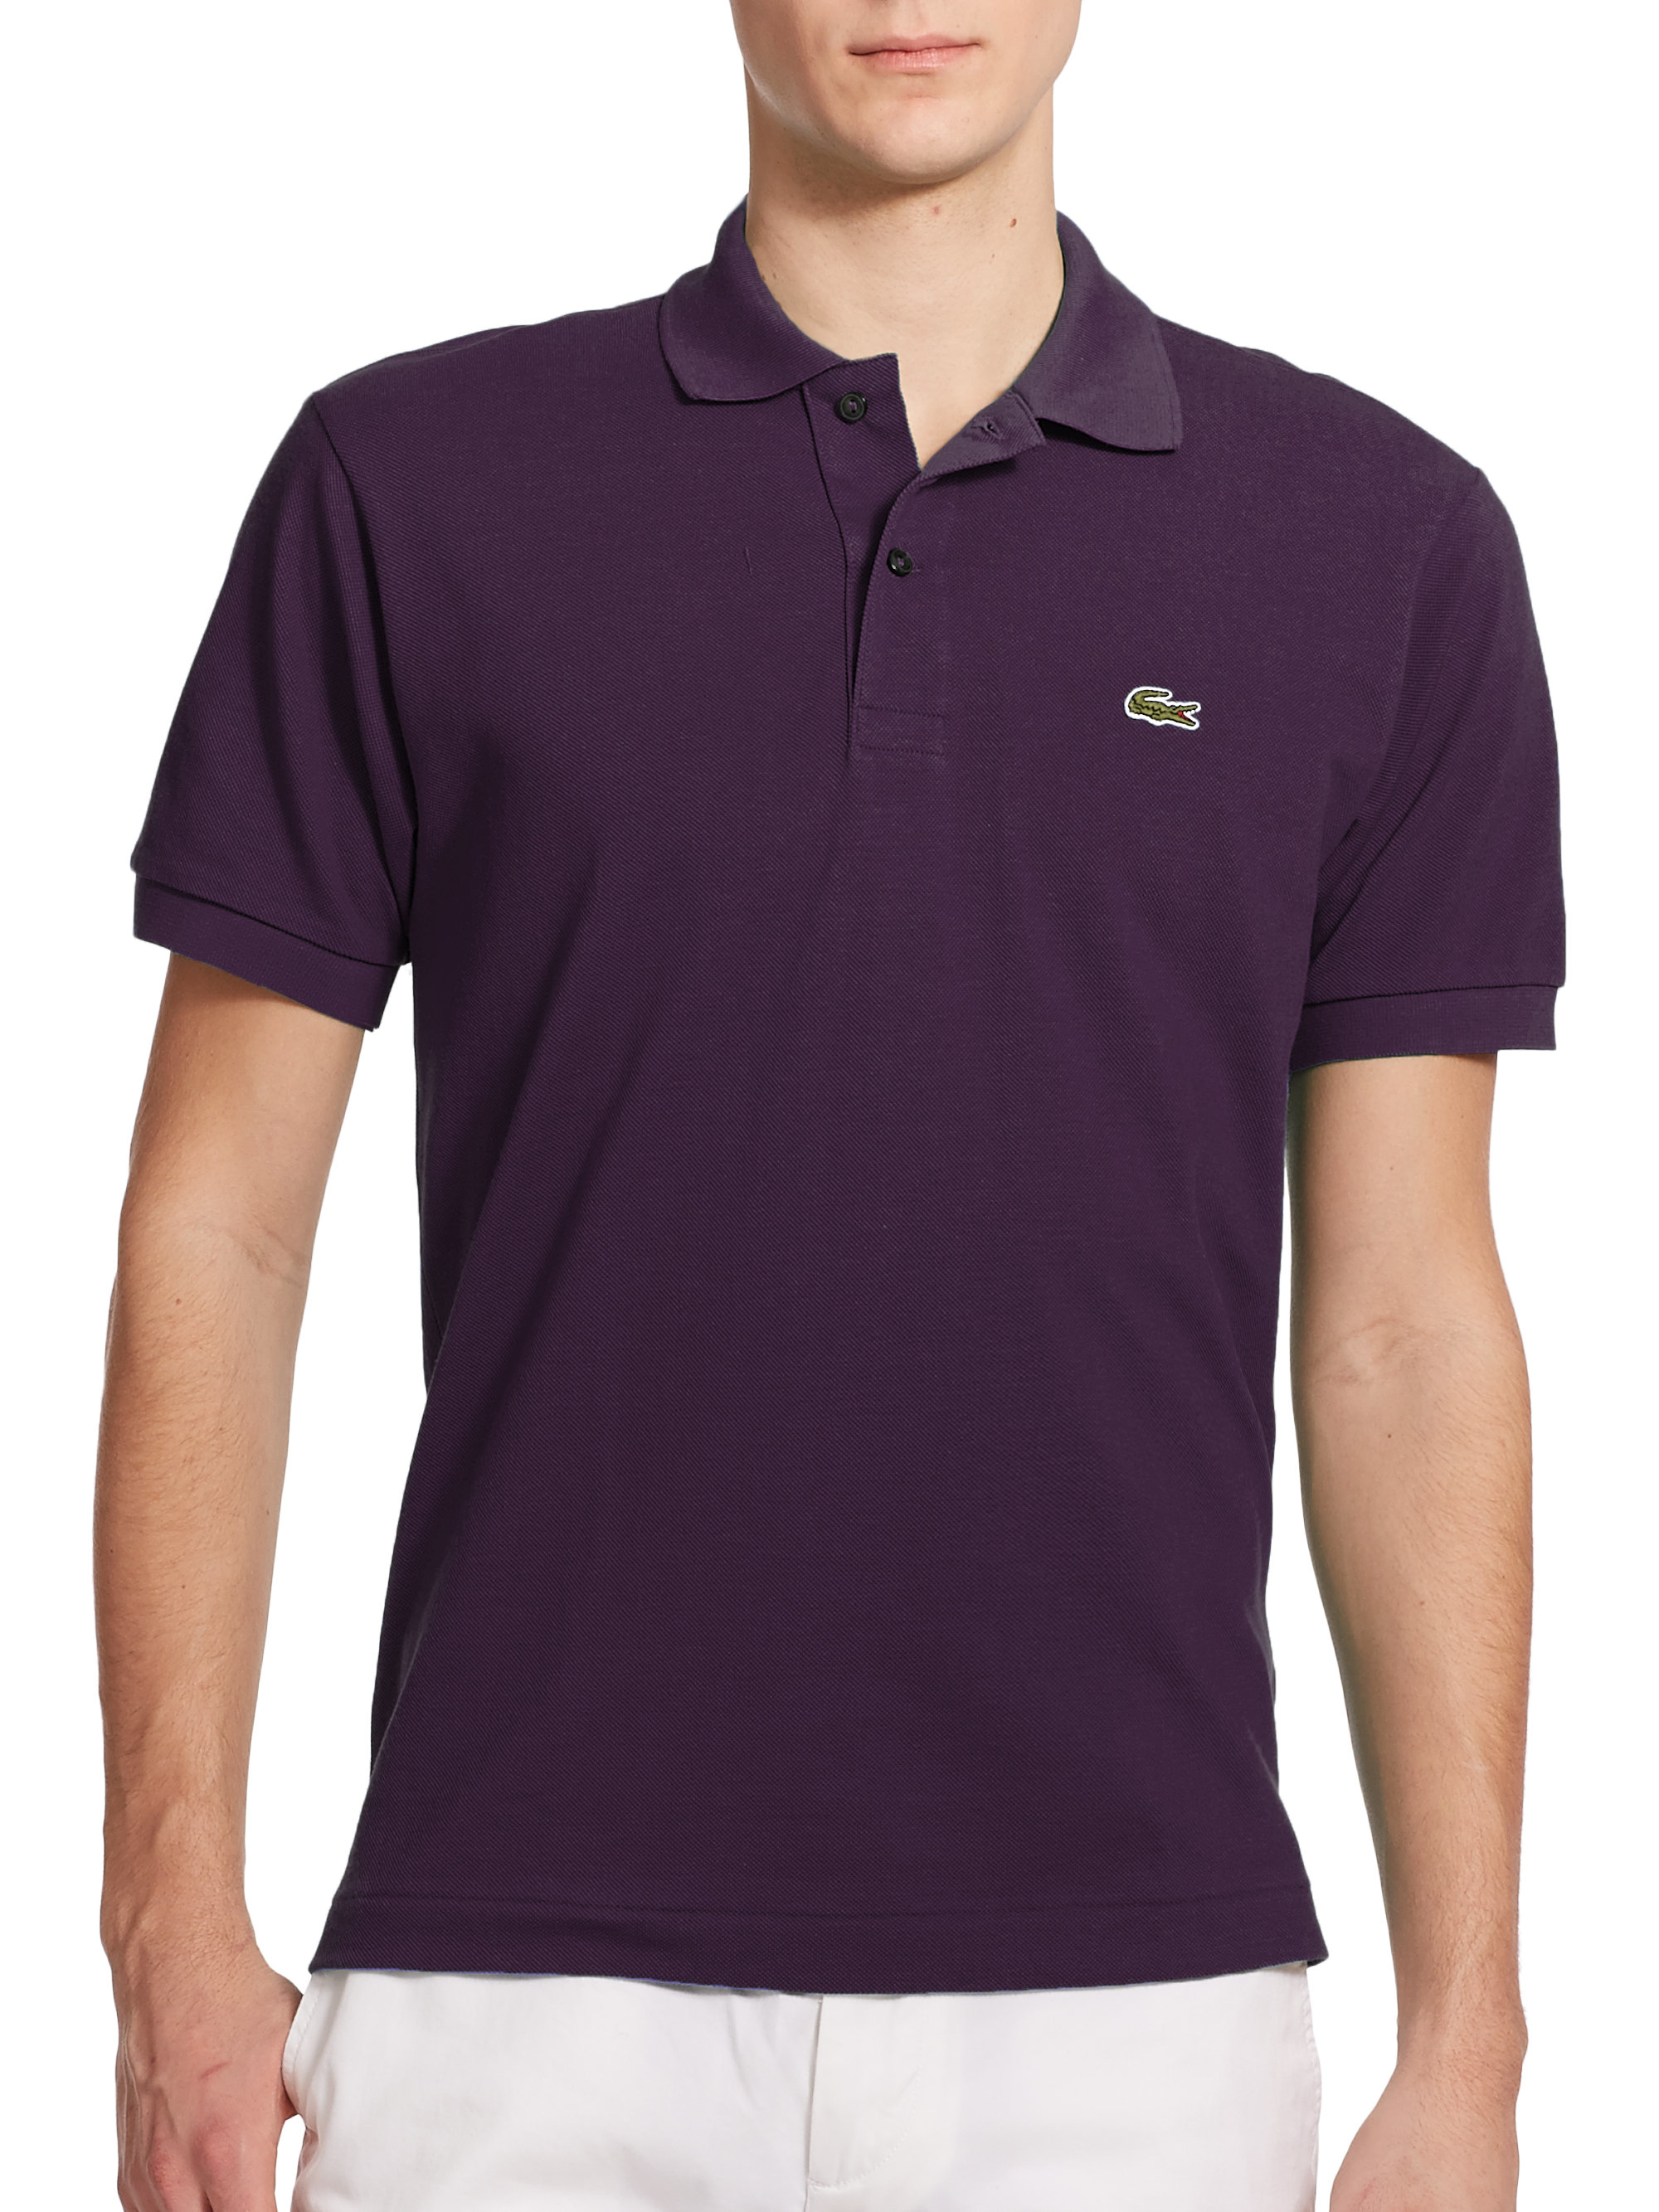 Lyst Lacoste Polo Shirt In Purple For Men